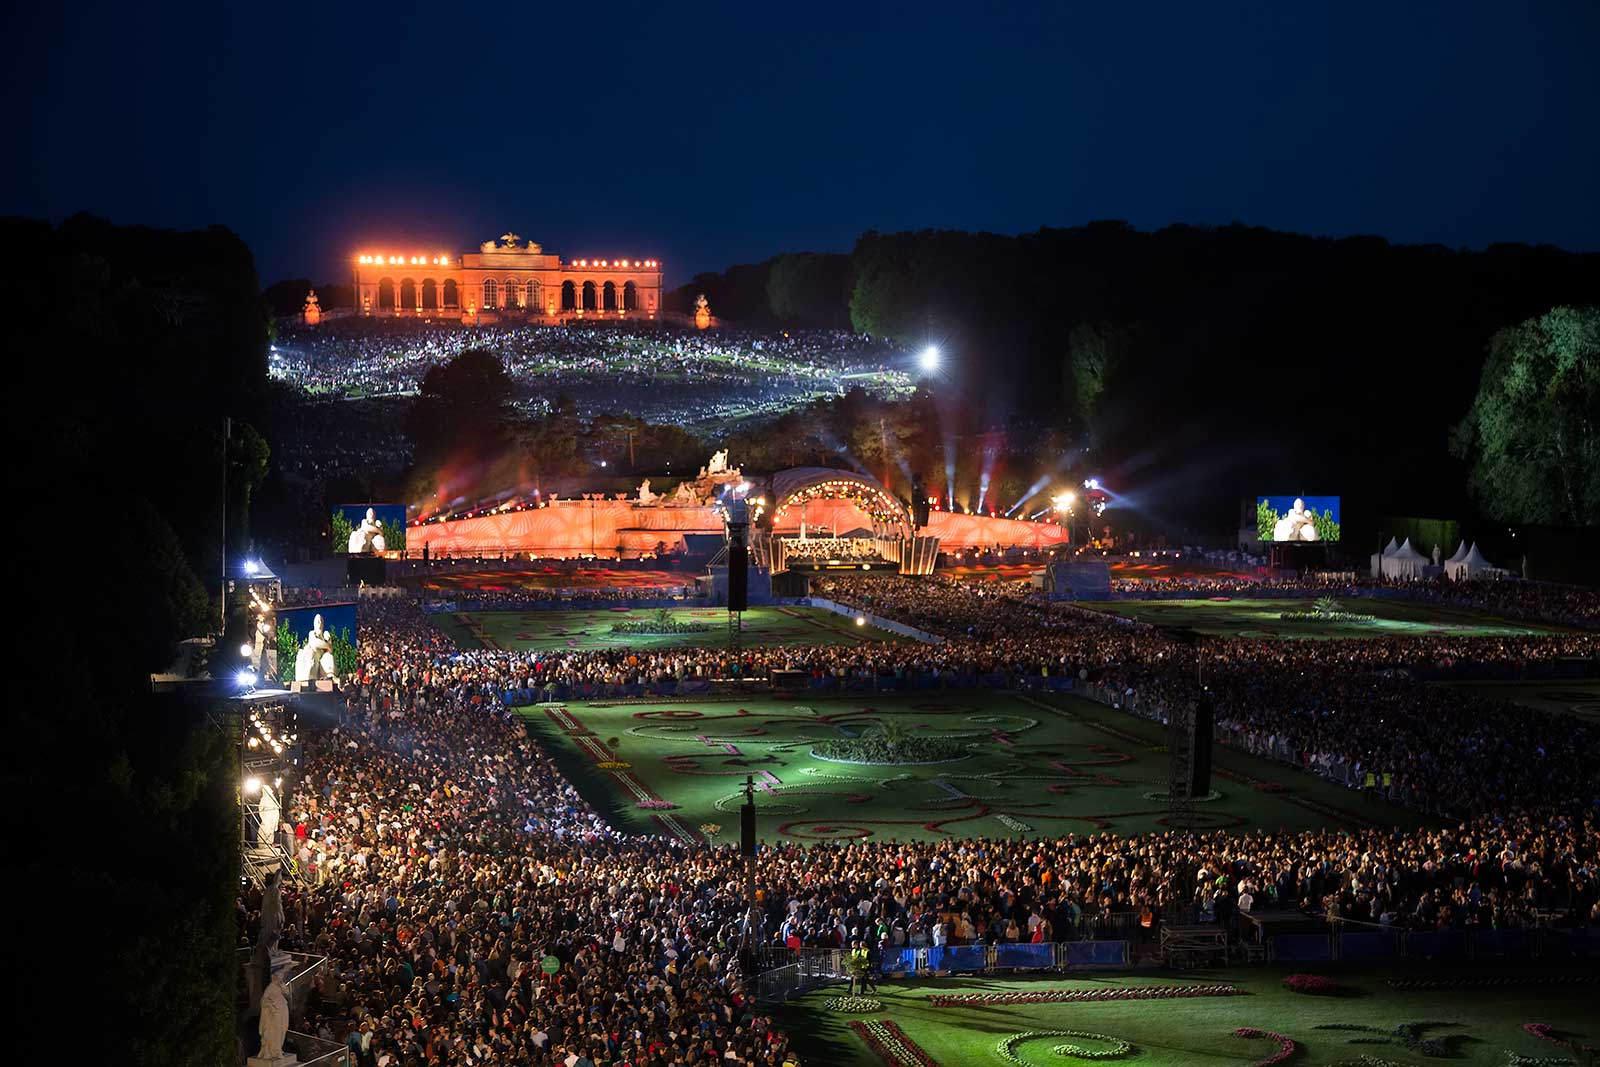 Each year the Vienna Philharmonic orchestra plays an open-air concert at Schönbrunn Palace park. The admission is free and it has been held every year (around May) since 2004. Approximately 100.000 people come here every year.